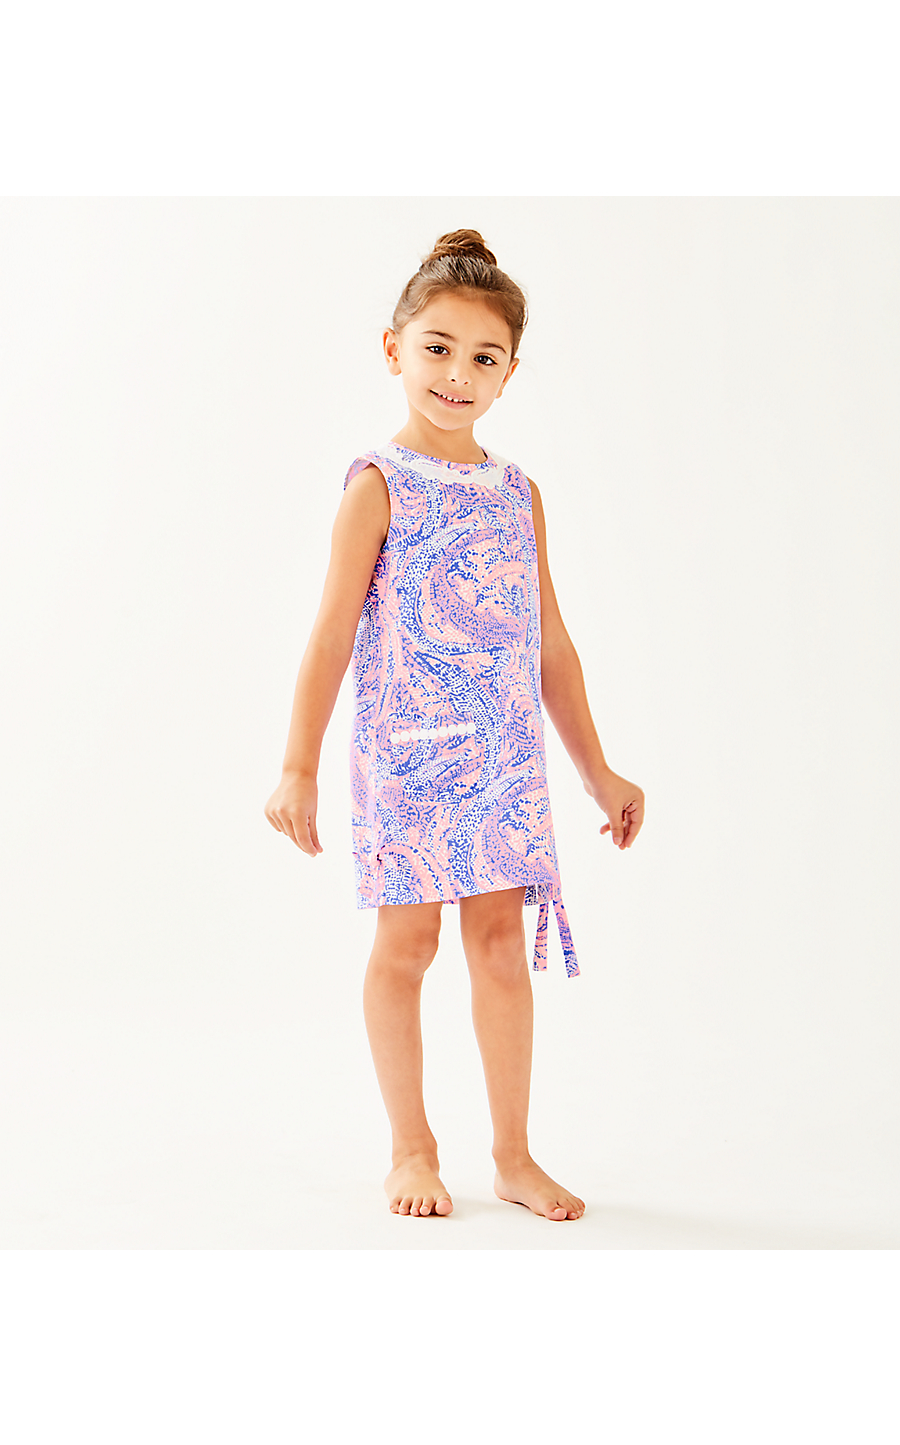 6b70c192649dbf LITTLE LILLY CLASSIC SHIFT - MAYBE GATOR - Lilly Pulitzer Store ...